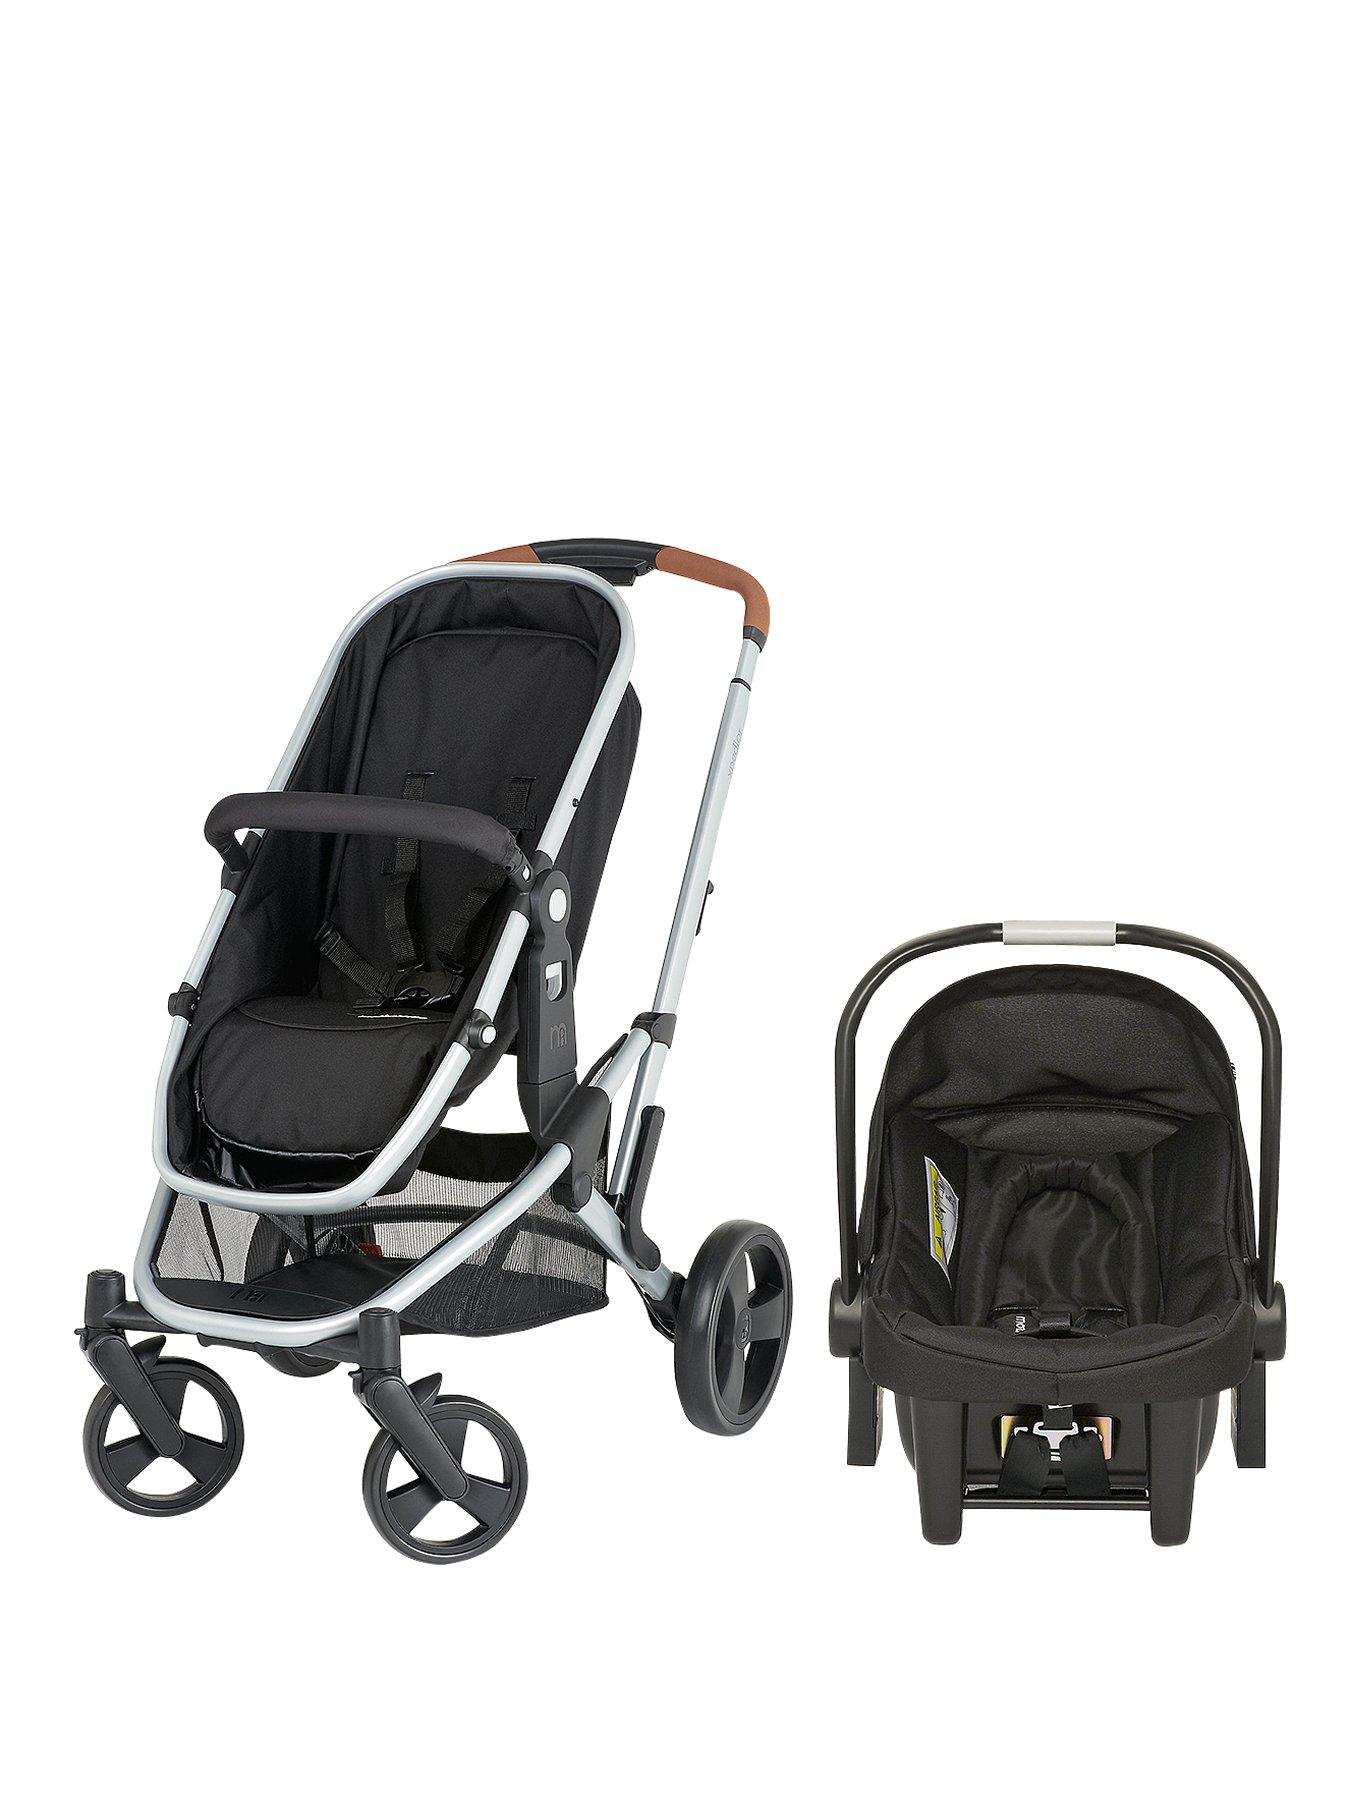 Mothercare Expedia 4 Wheel Travel System